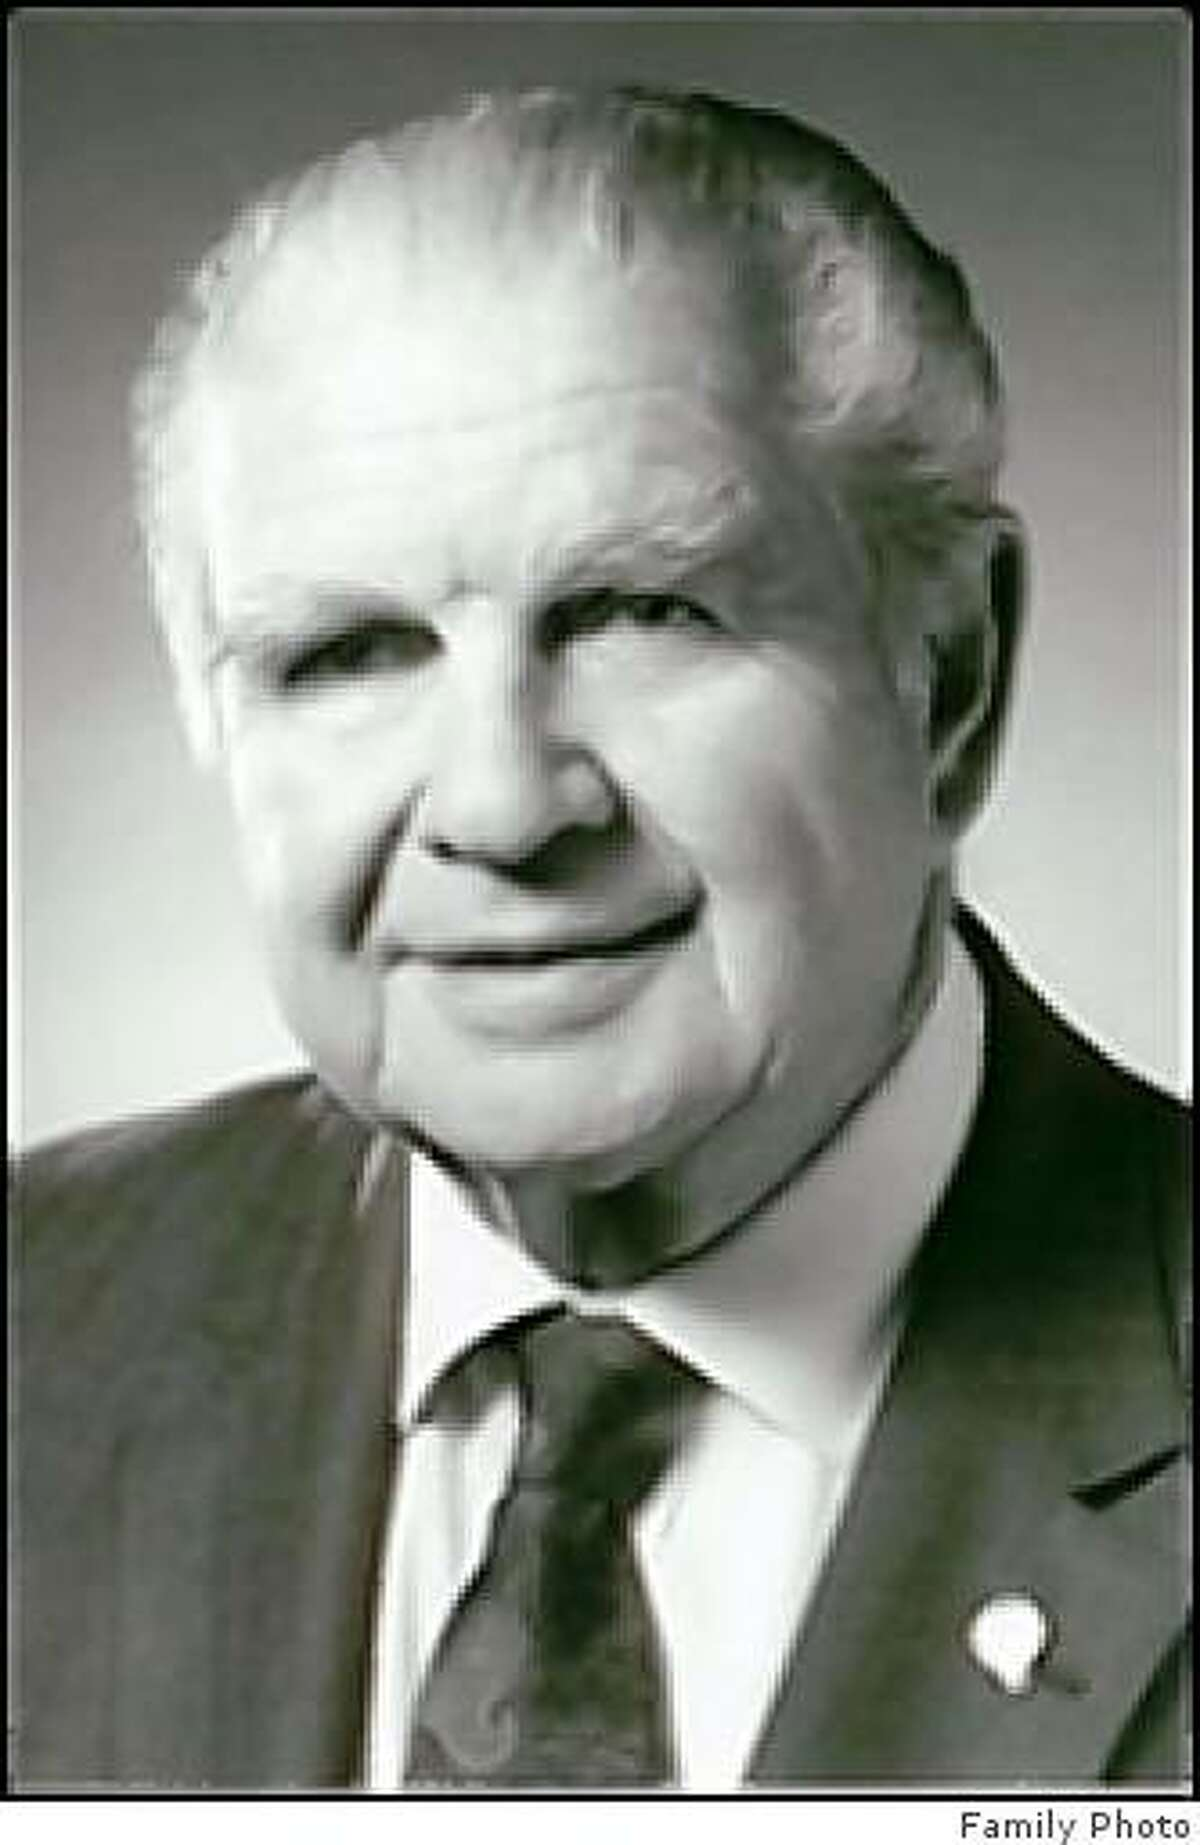 obit photo of Albin J. Gruhn Albin J. Gruhn long time resident of San Anselmo, CA, died on March 18, 2009 in Greenbrae, CA, surrounded by loved ones who were singing his favorite songs. Al was born on January 3, 1915 in Eureka, CA. He became a major figure in the labor movement of California, a calling he devoted himself to with enormous passion and constant optimism